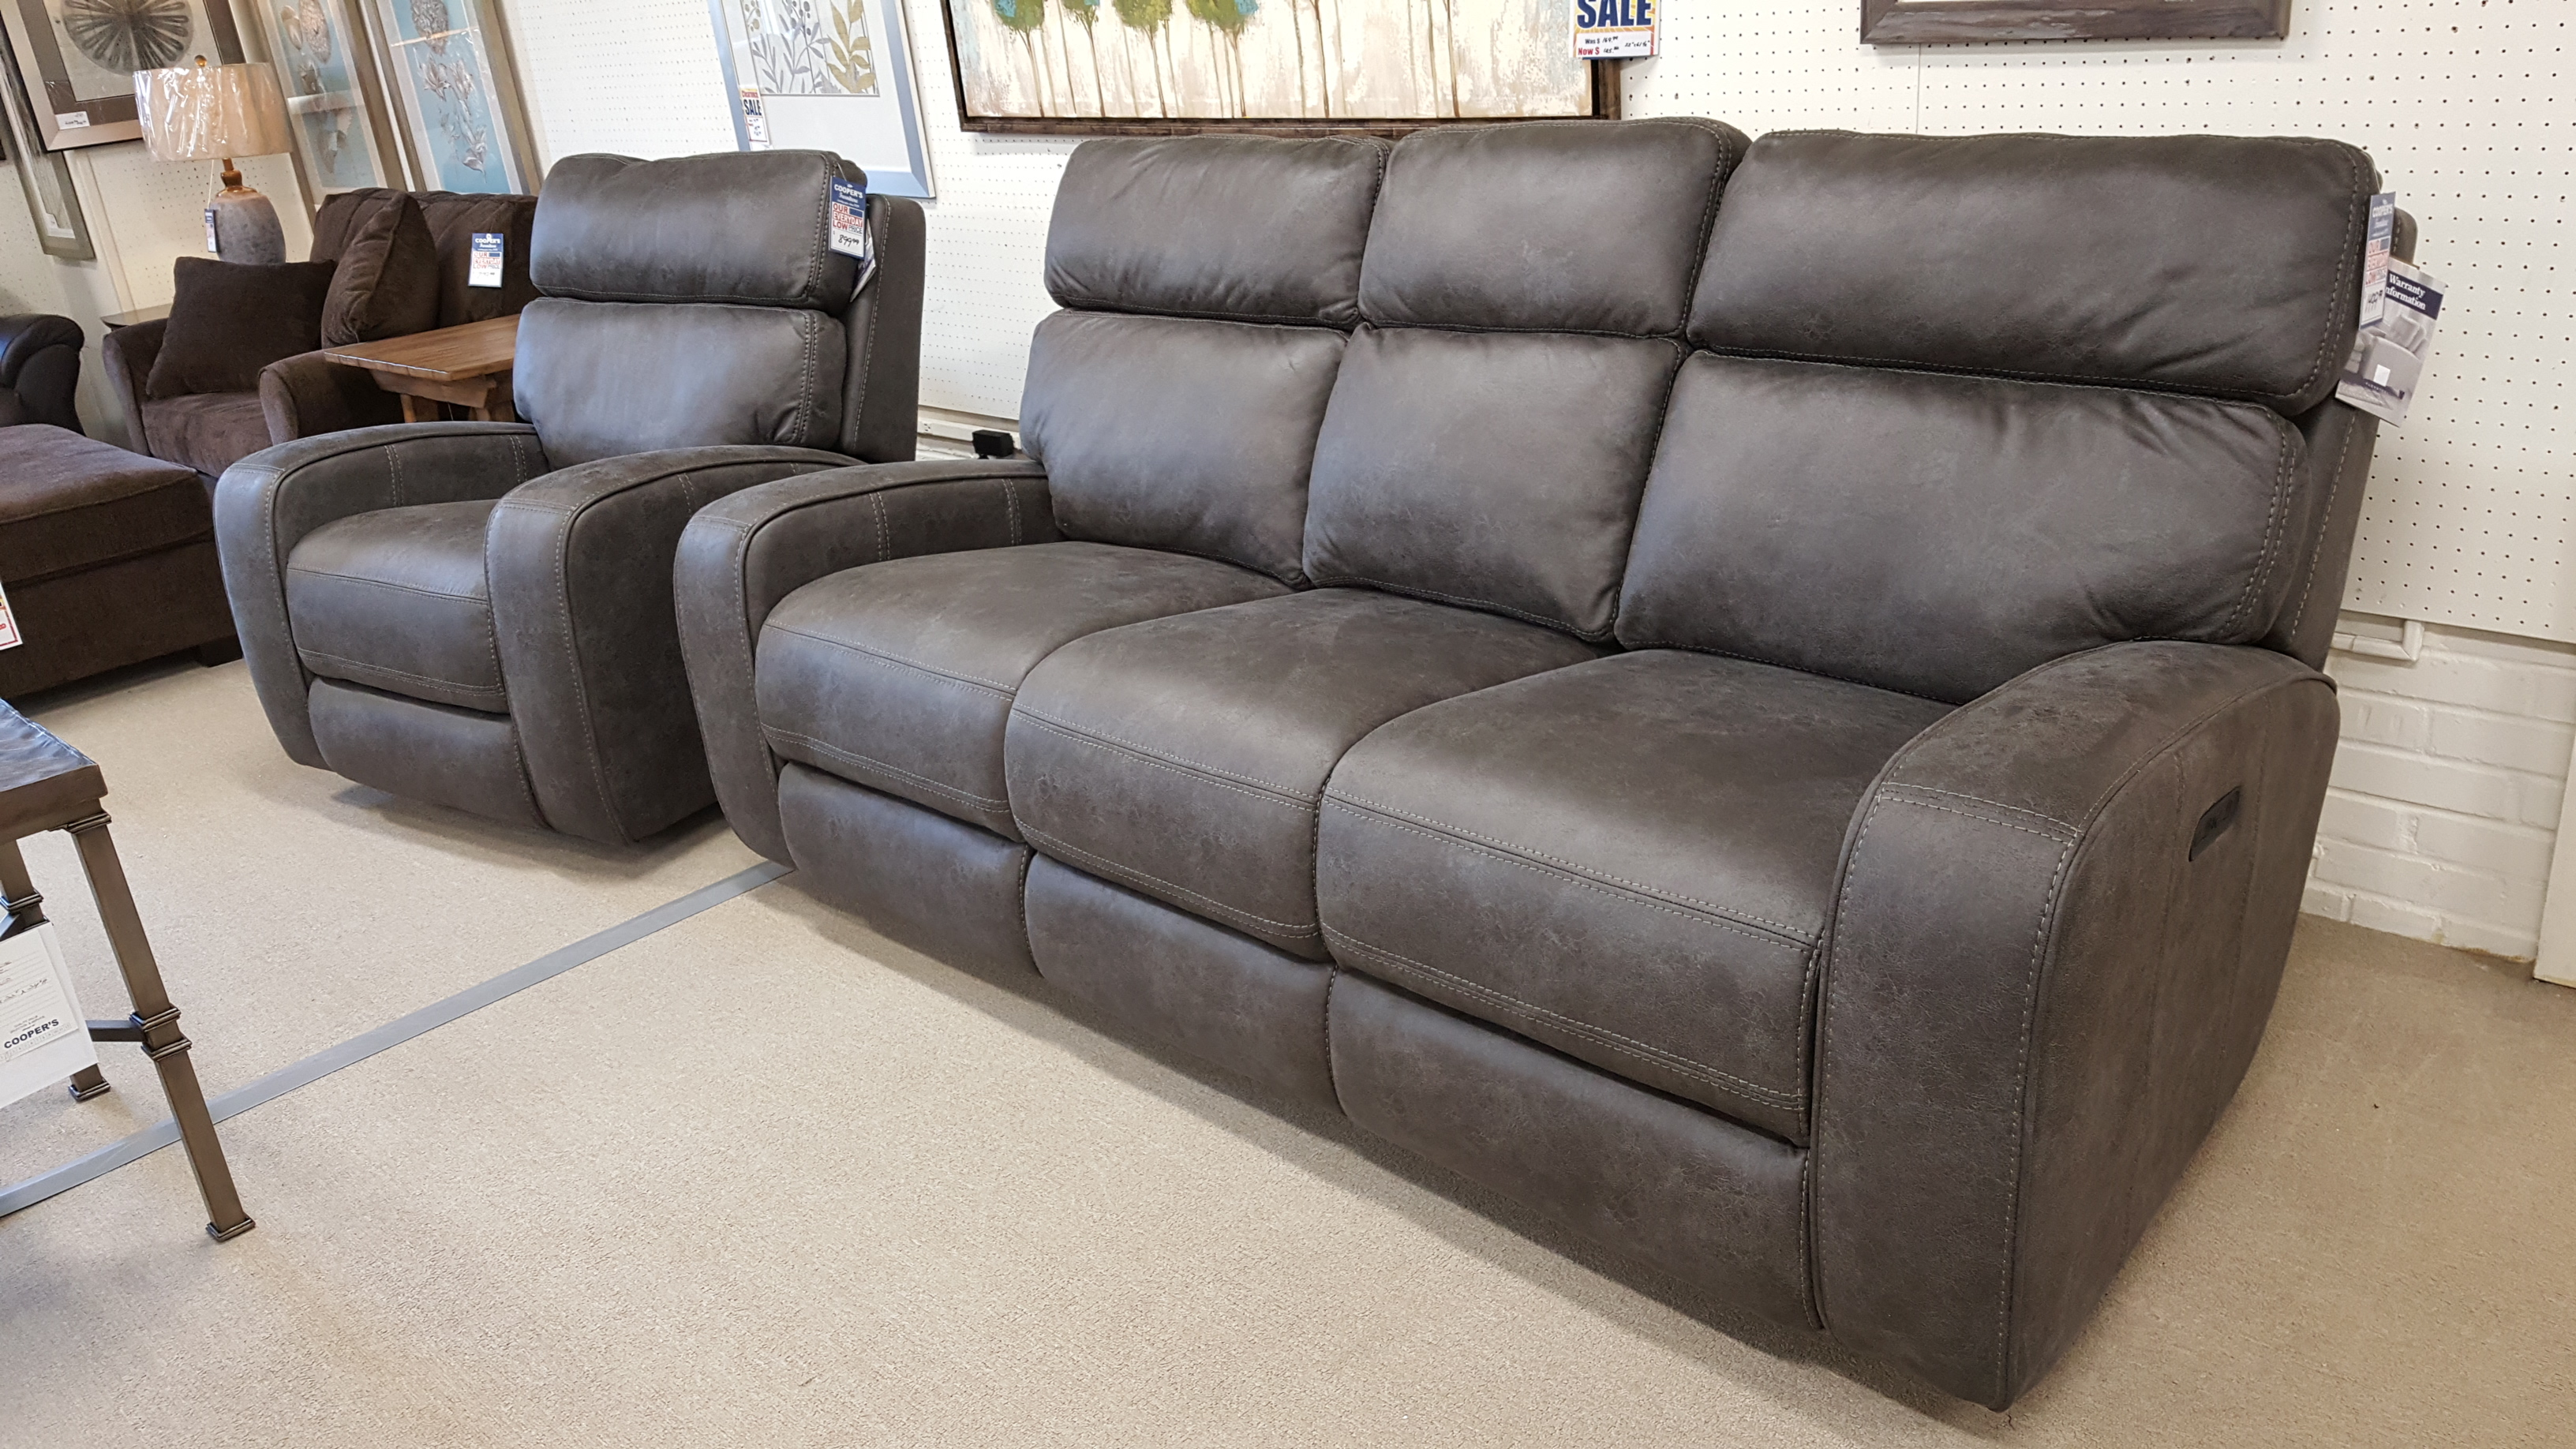 comfort slate rs motion savvy recliners in furniture products southern